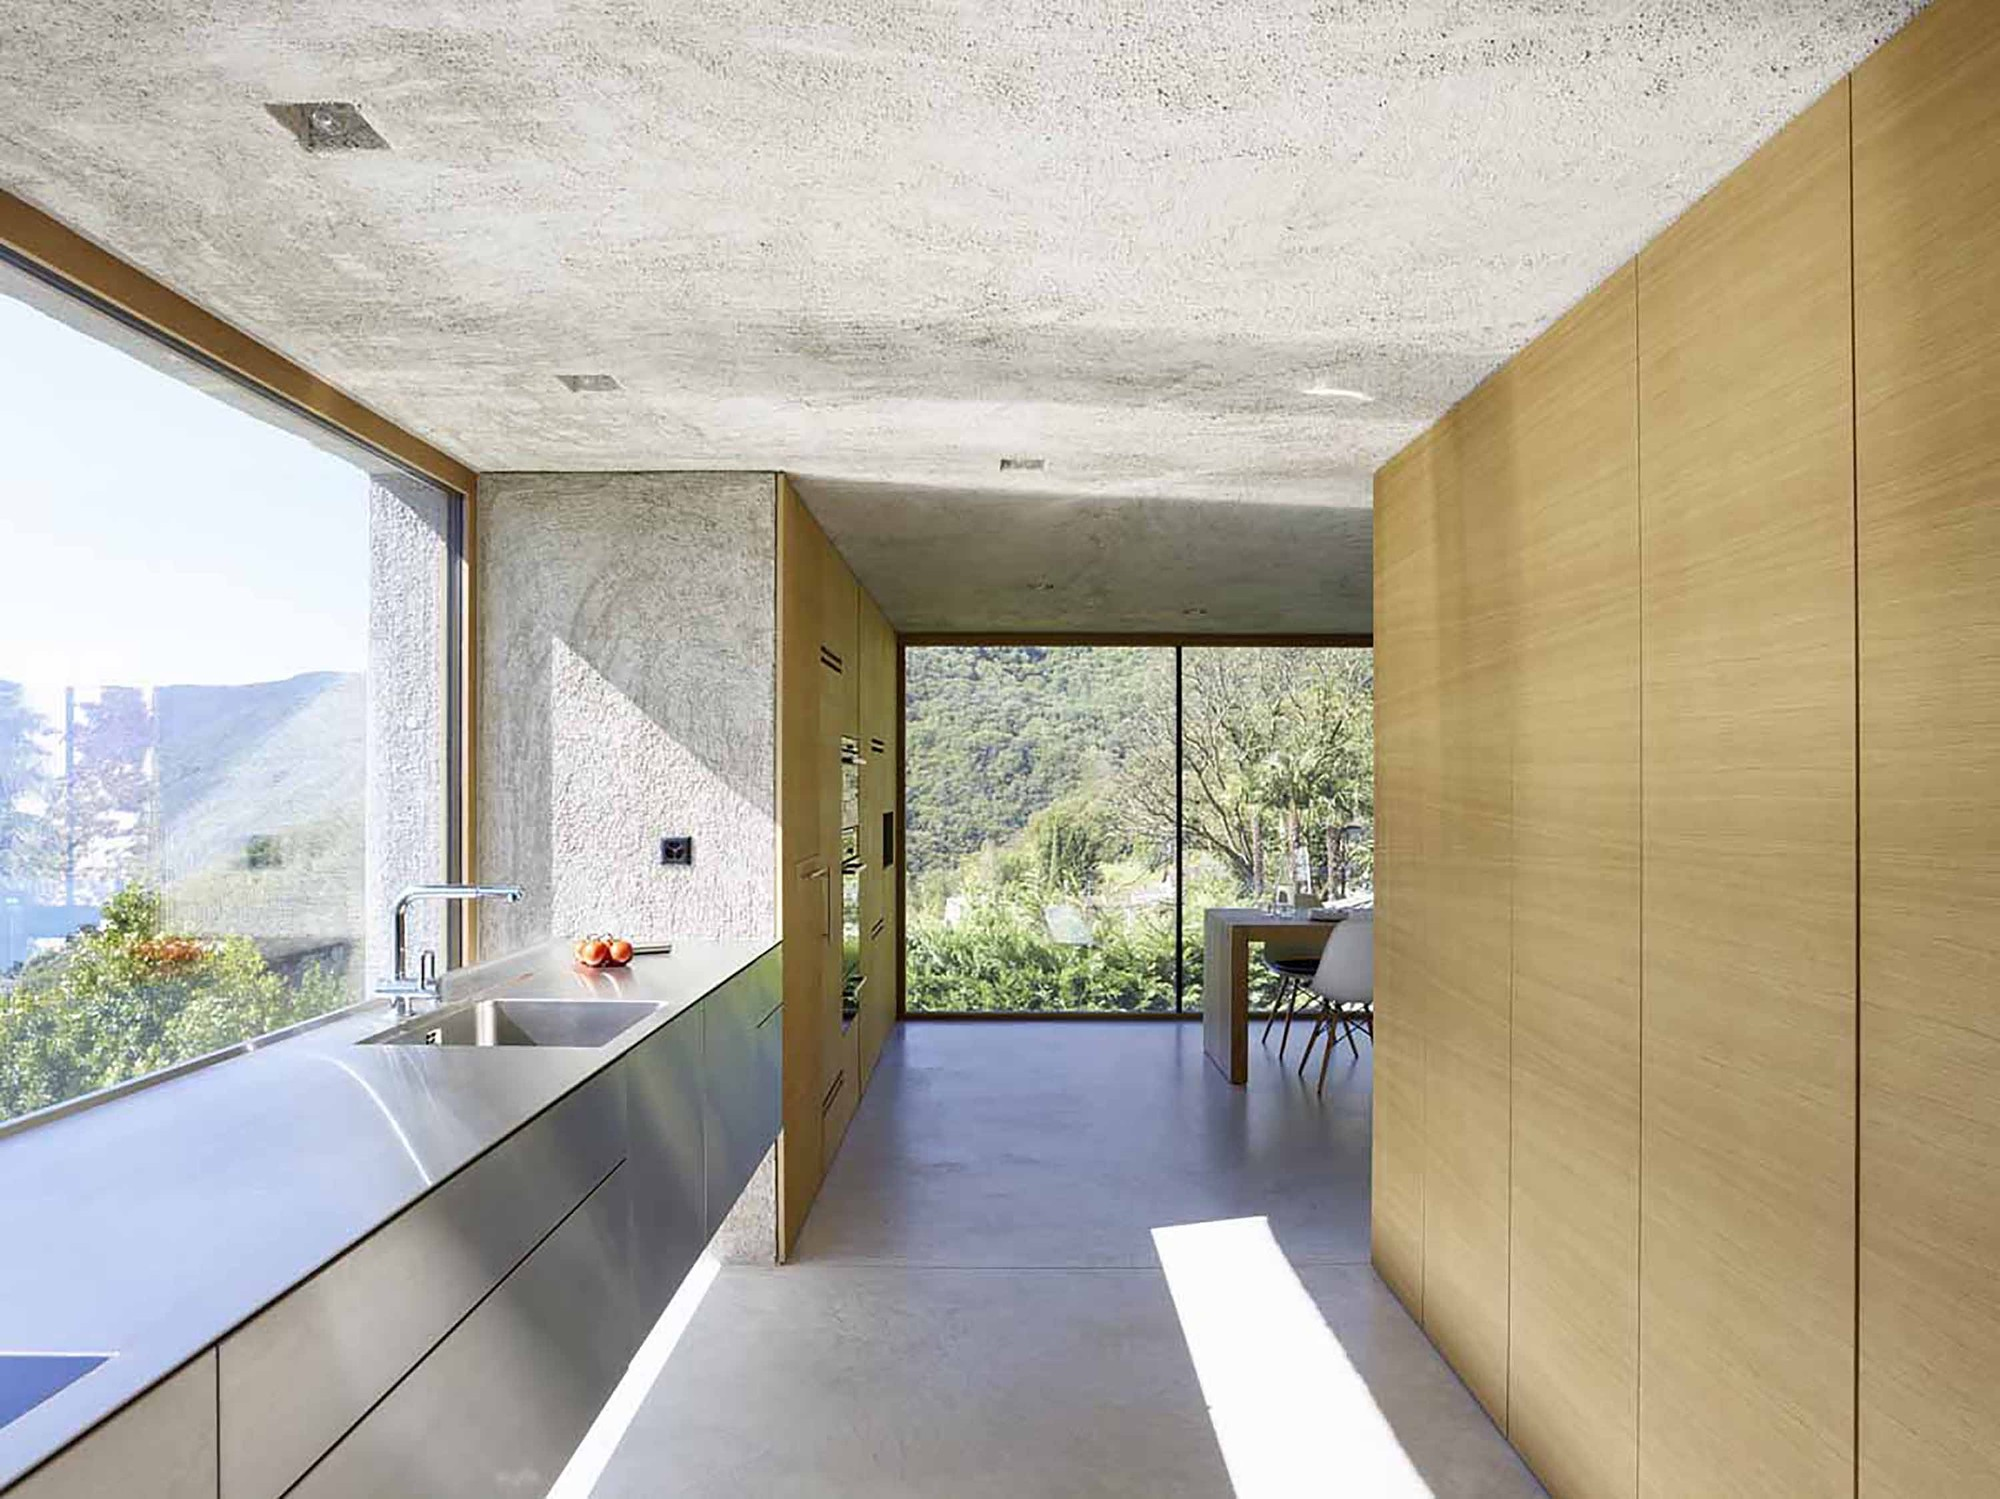 House in brissago by wespi de meuron romeo architects in for Design in casa